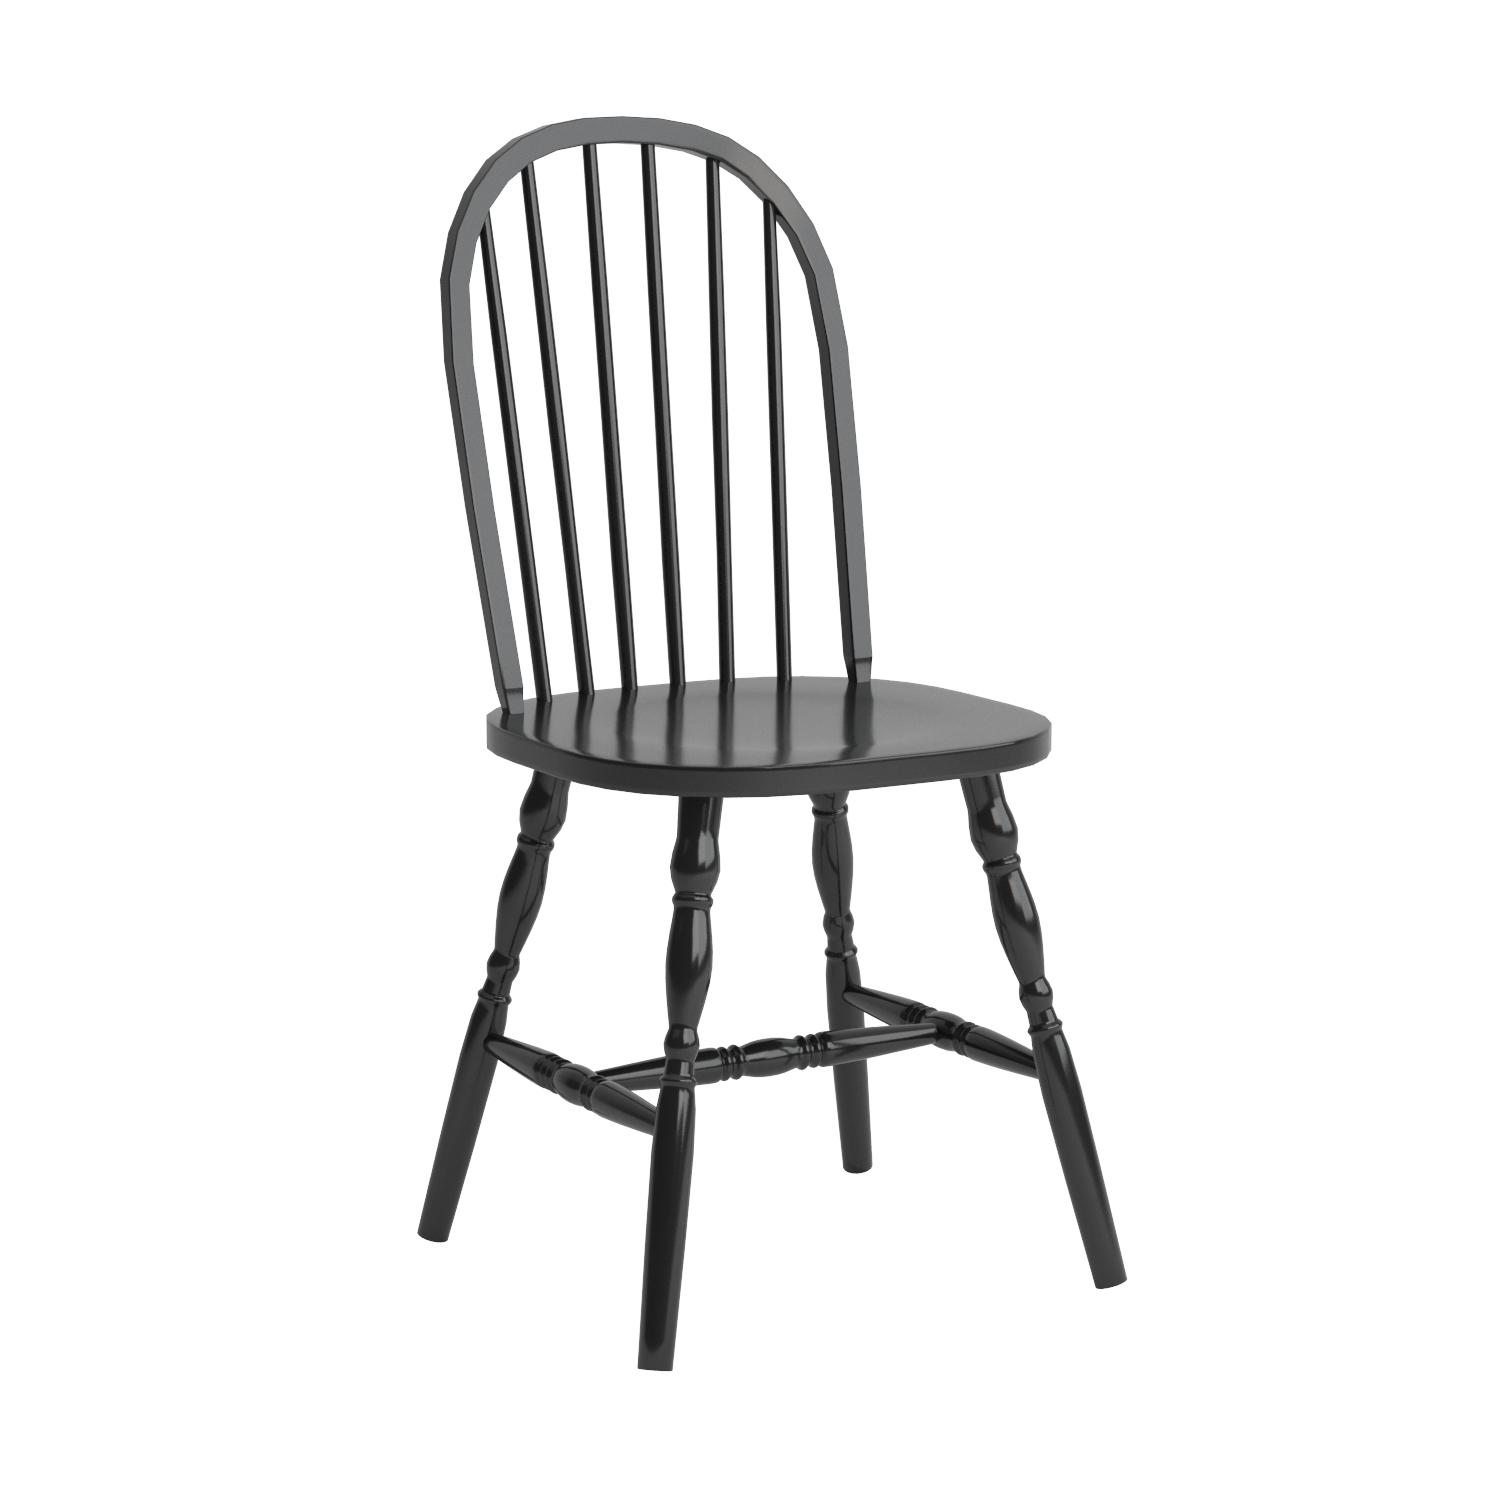 Amazon Winsome Wood Assembled 36 Inch Windsor Chairs with